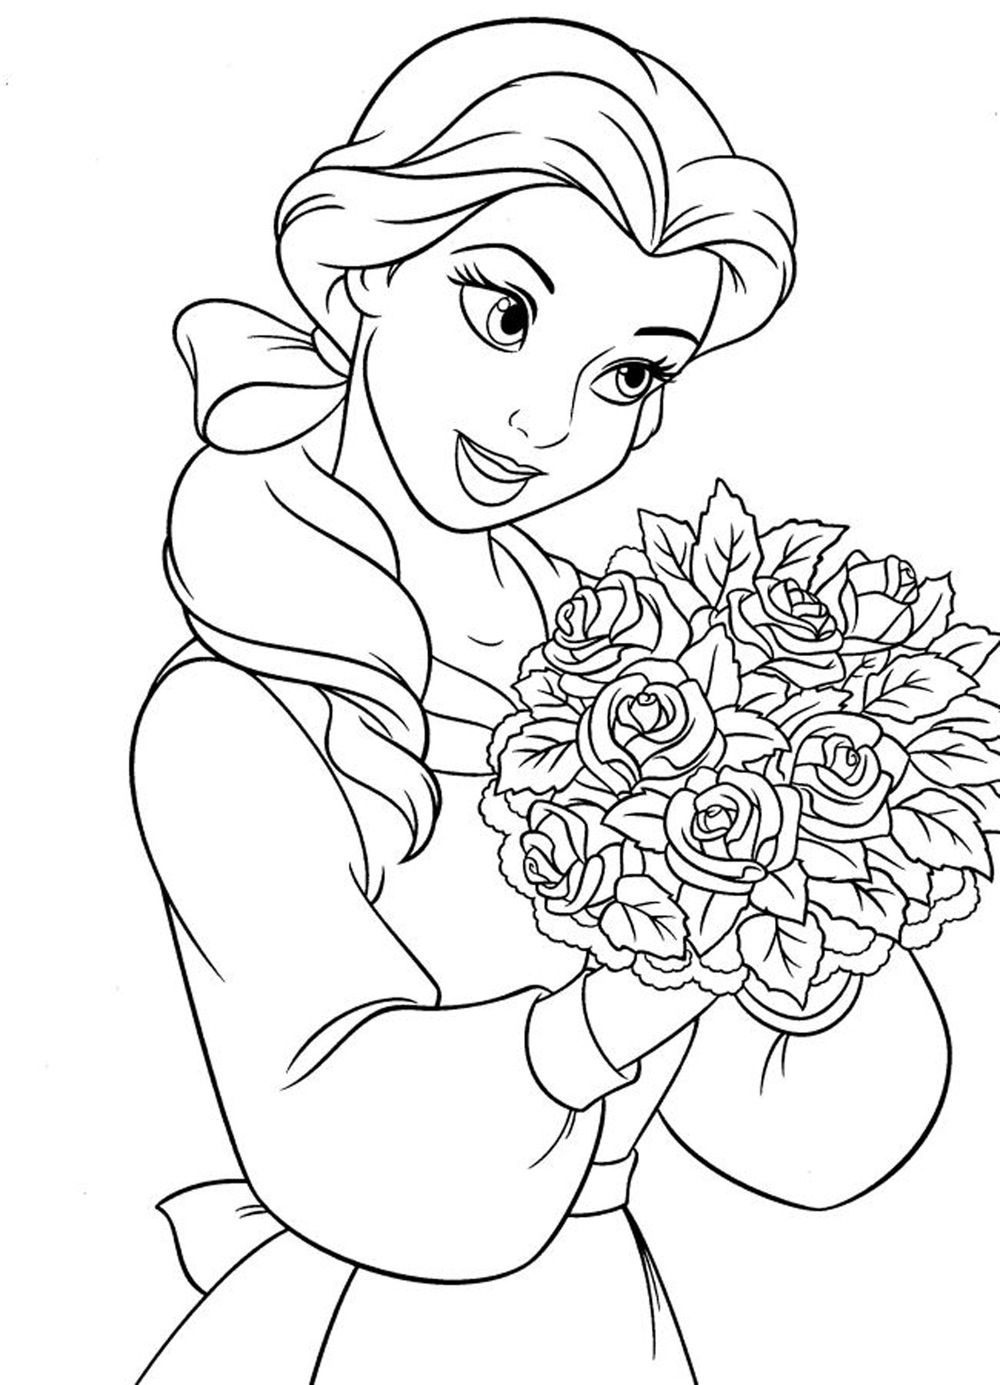 Explore coloring pages for girls kids coloring and more